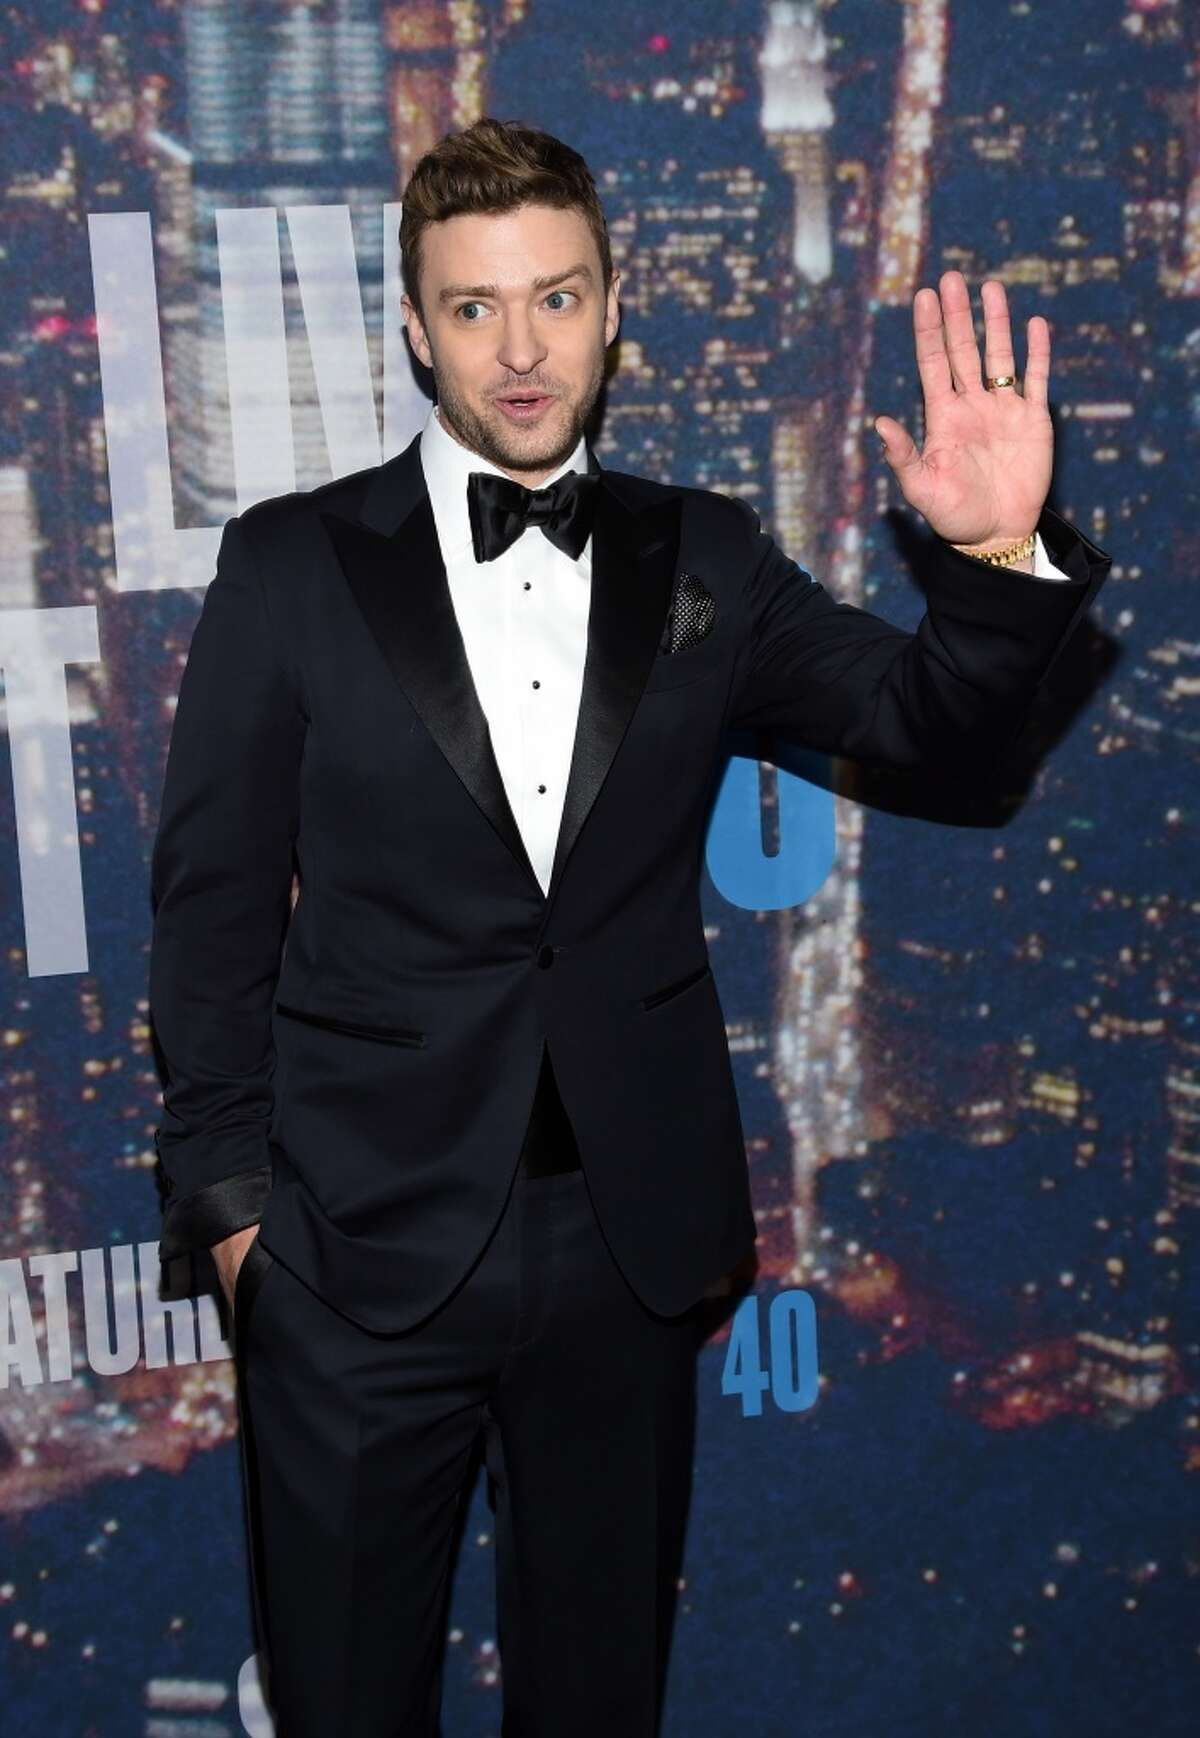 NEW YORK, NY - FEBRUARY 15: Justin Timberlake attends SNL 40th Anniversary Celebration at Rockefeller Plaza on February 15, 2015 in New York City. (Photo by Larry Busacca/Getty Images)